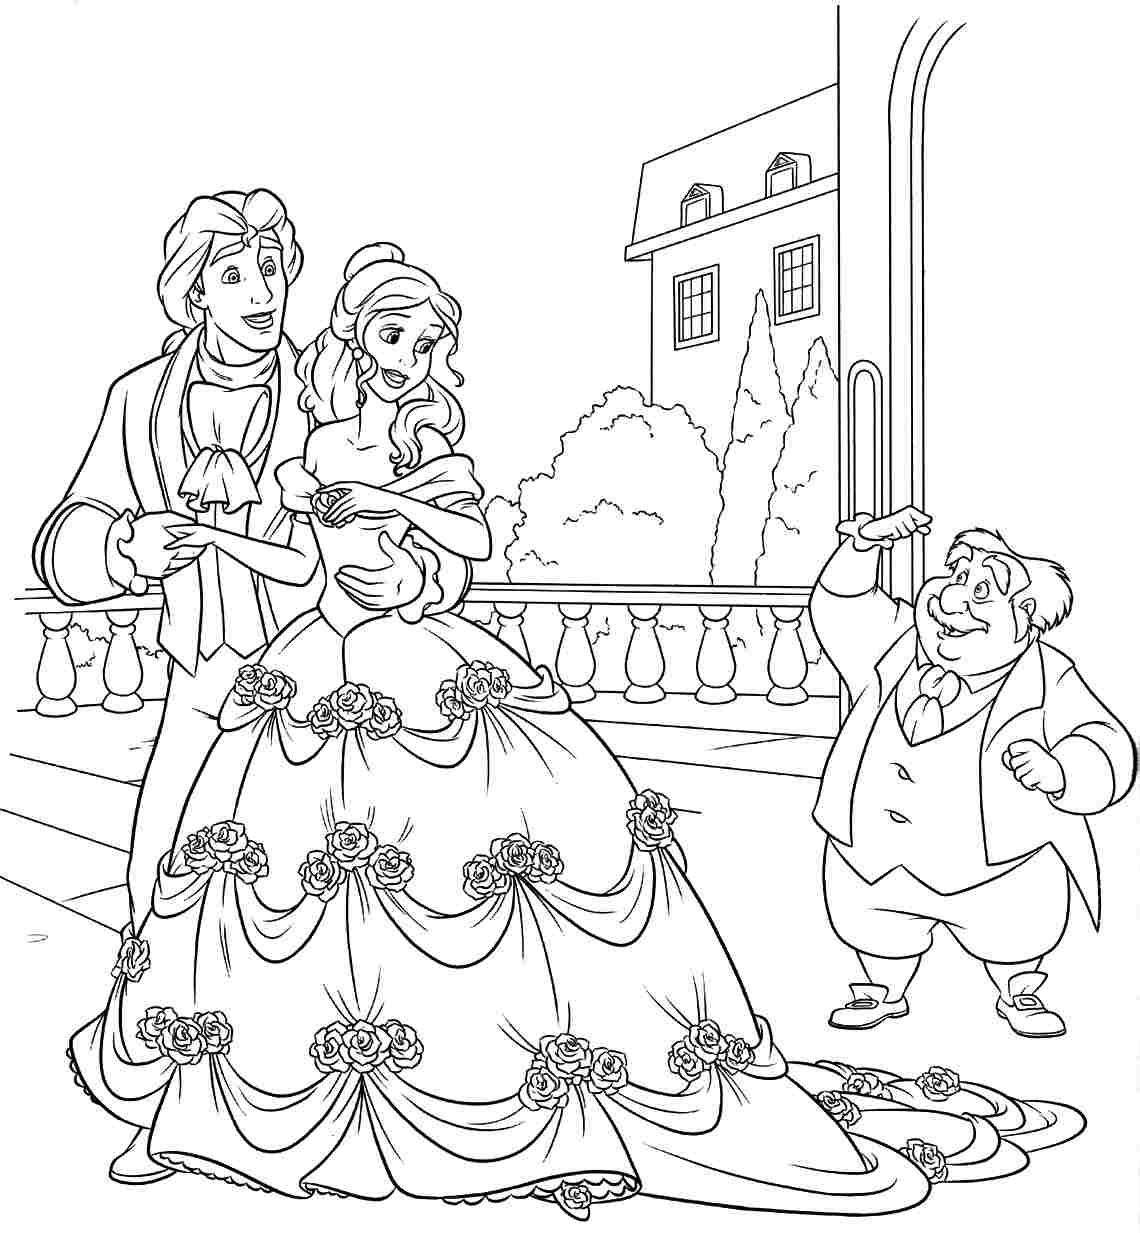 Beauty And The Beast Coloring Pages | Forcoloringpages.com ...